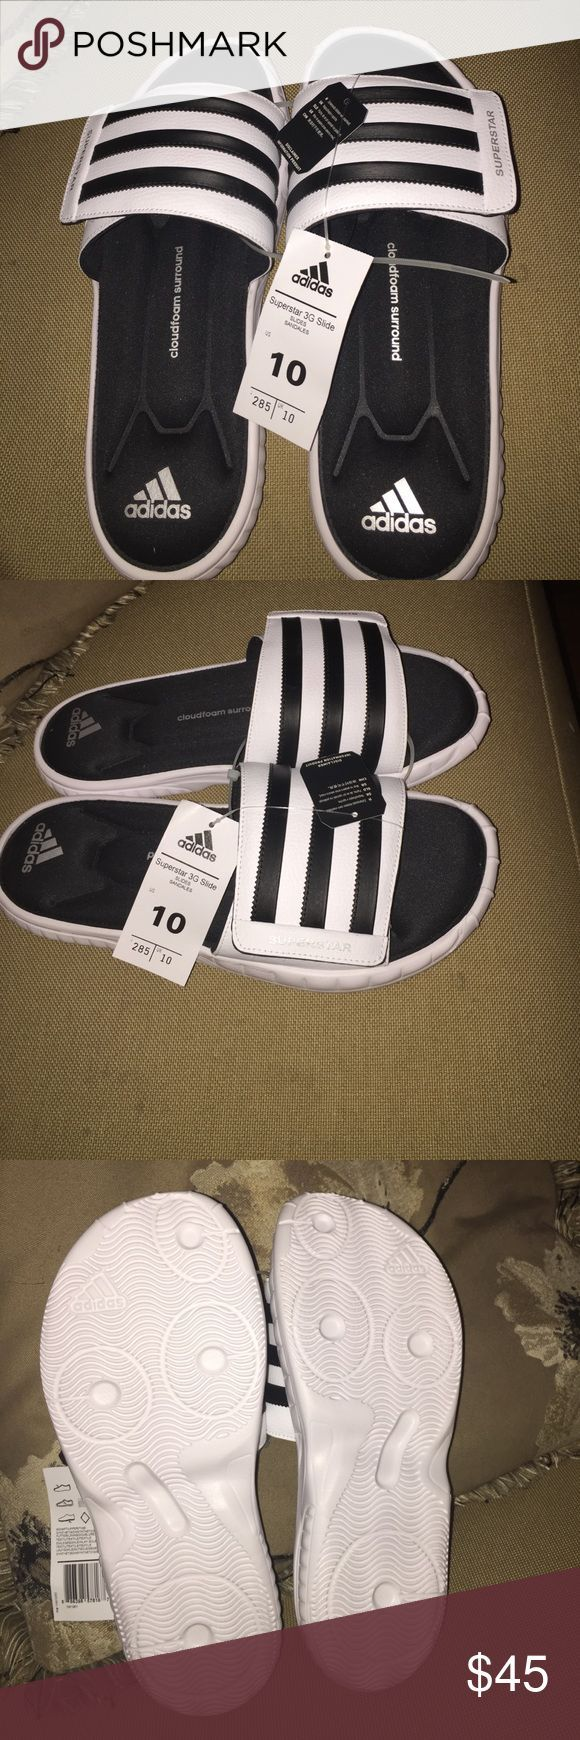 Adidas Shoes | Adidas Slides | Color: Black/White | Size: 10,  Adidas Shoes | Adidas Slides | Color: Black/White | Size: 10,